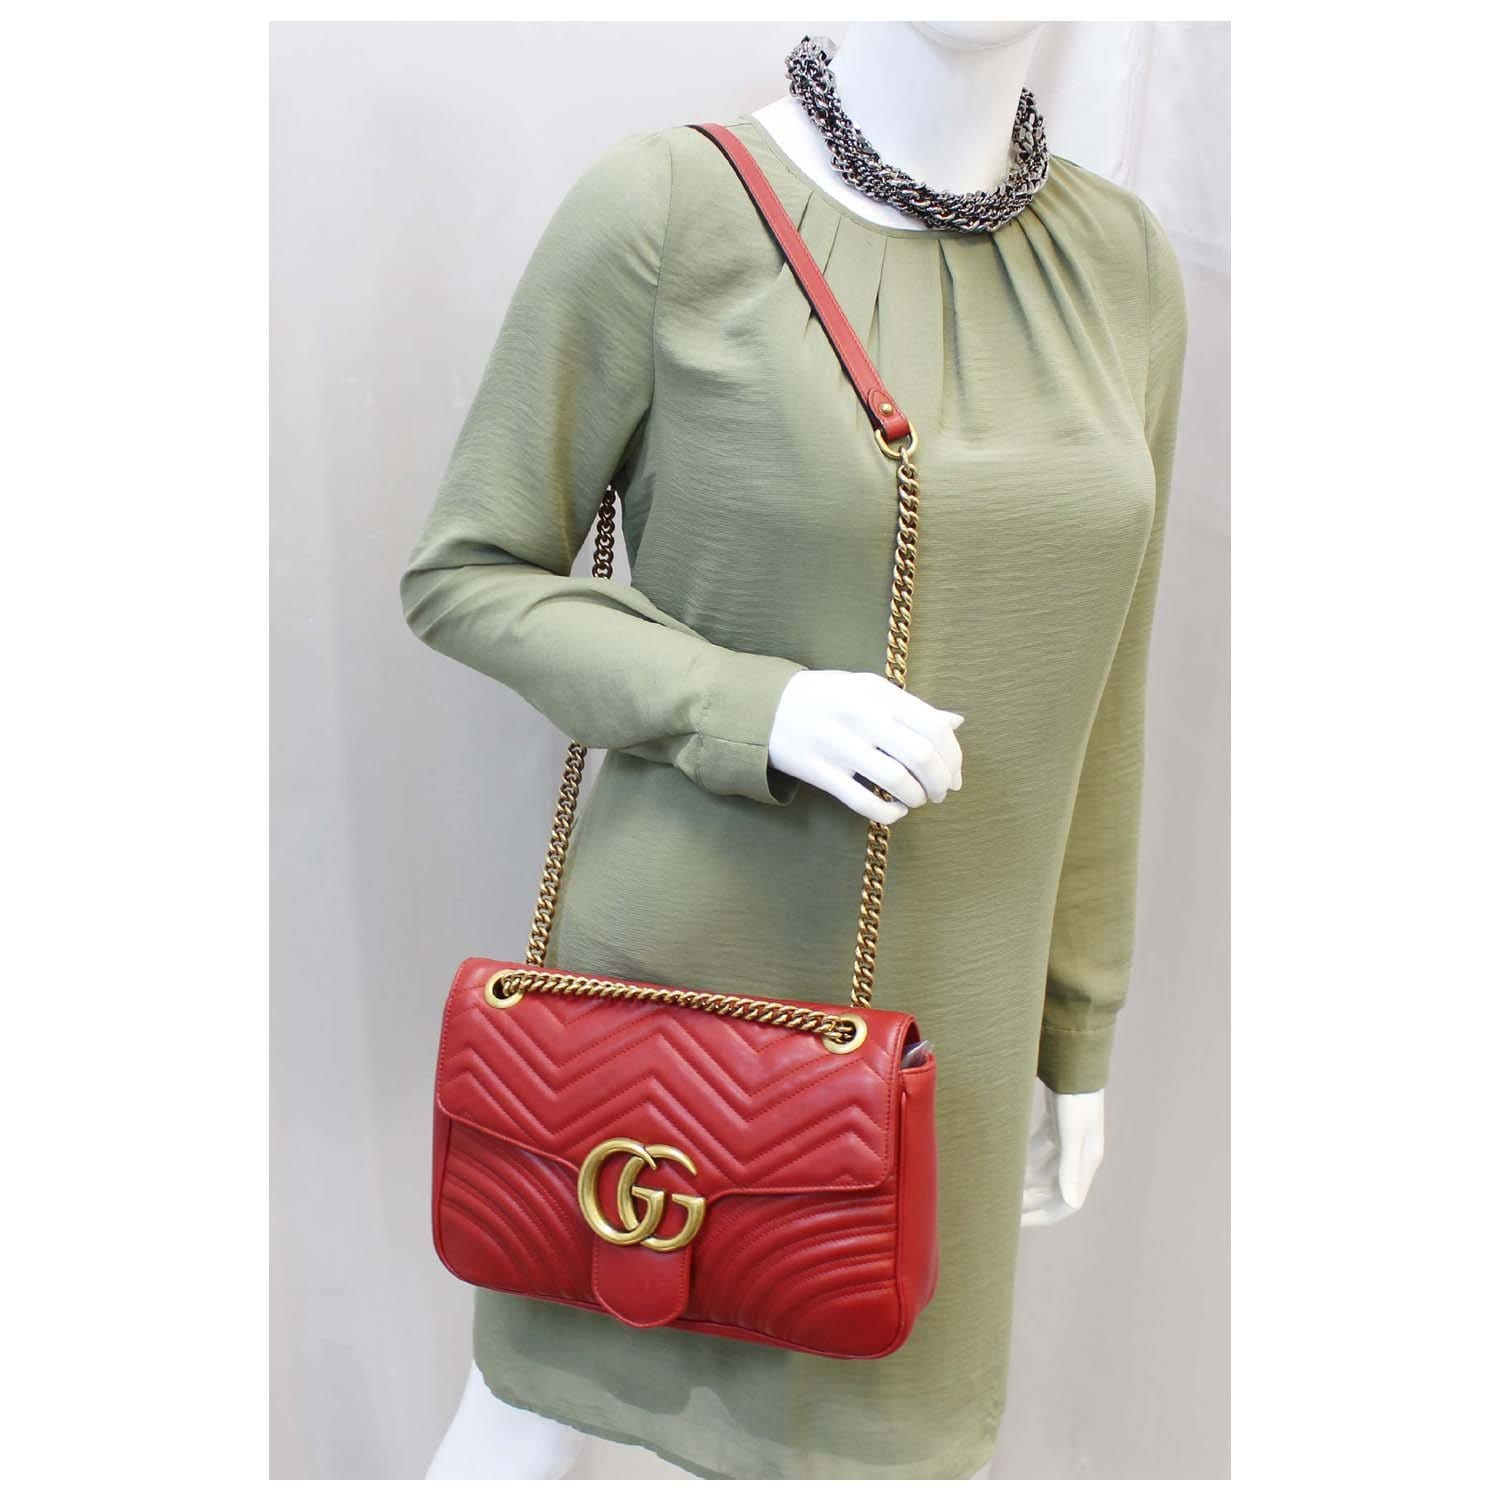 73f6e180f1d5 GUCCI GG Marmont Matelasse Red Leather Shoulder Bag